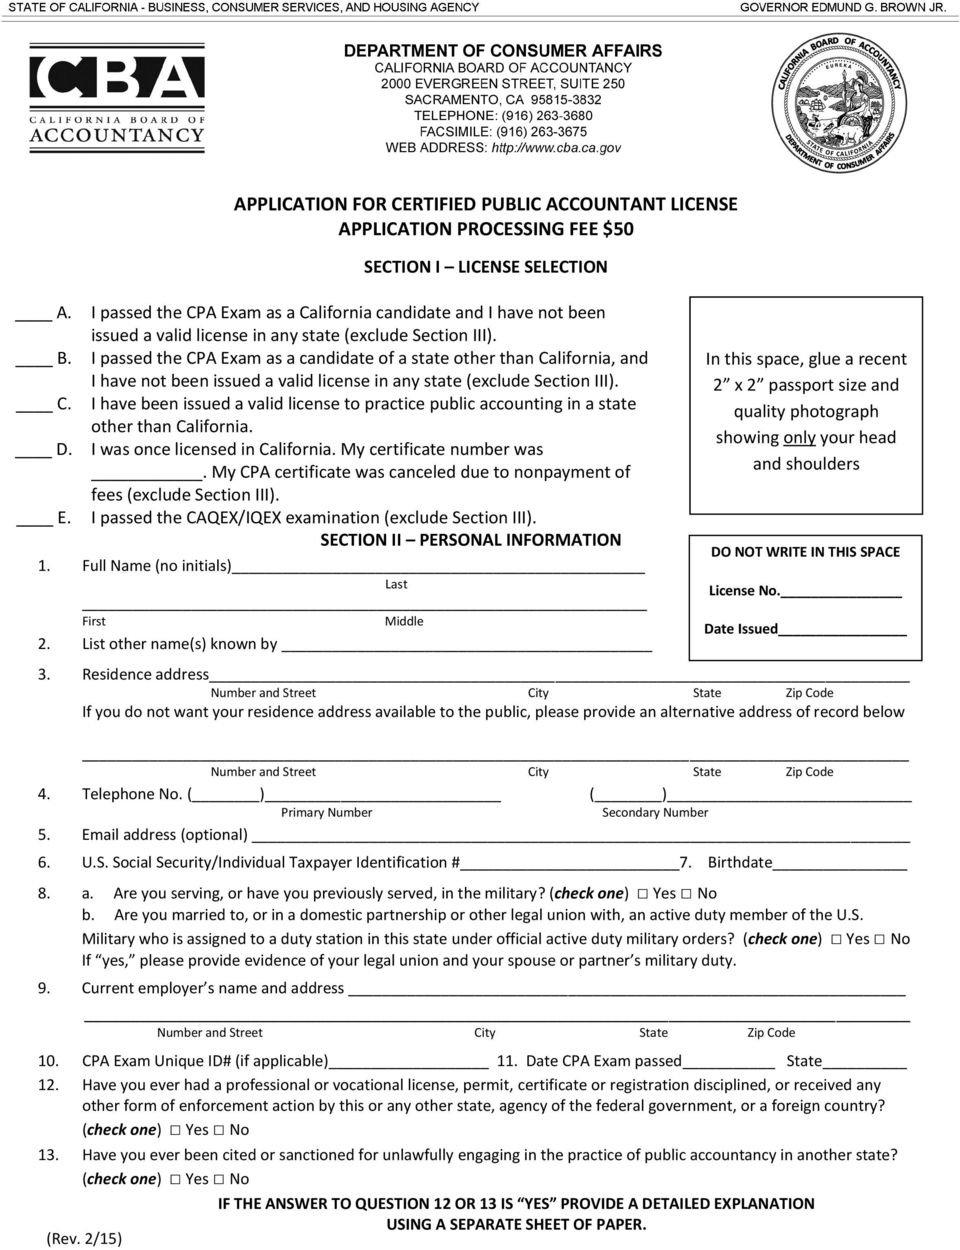 Application for Certified Public Accountant License Form 11A